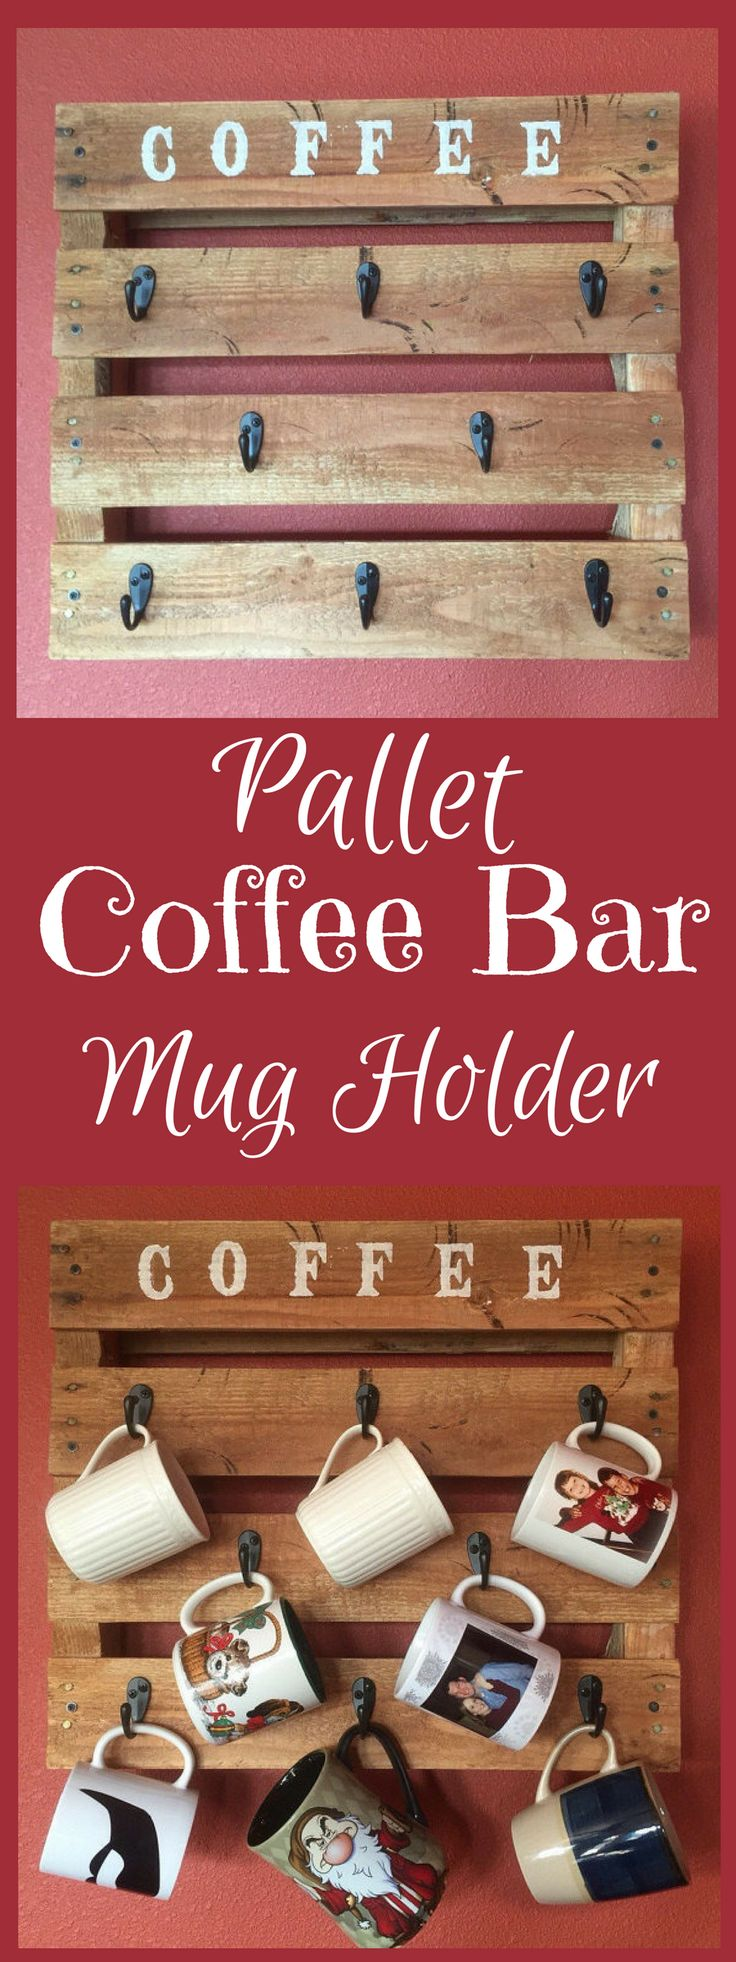 Pallet coffee cup holder. Comes ready to hang on wall with brackets. Can be personalized with different verbiage at top, or see other listing variations. #wood #afflink #coffee #coffeebar #kitchendesign #rustic #rusticdecor #rusticfarmhouse #farmhouse #farmhousekitchen